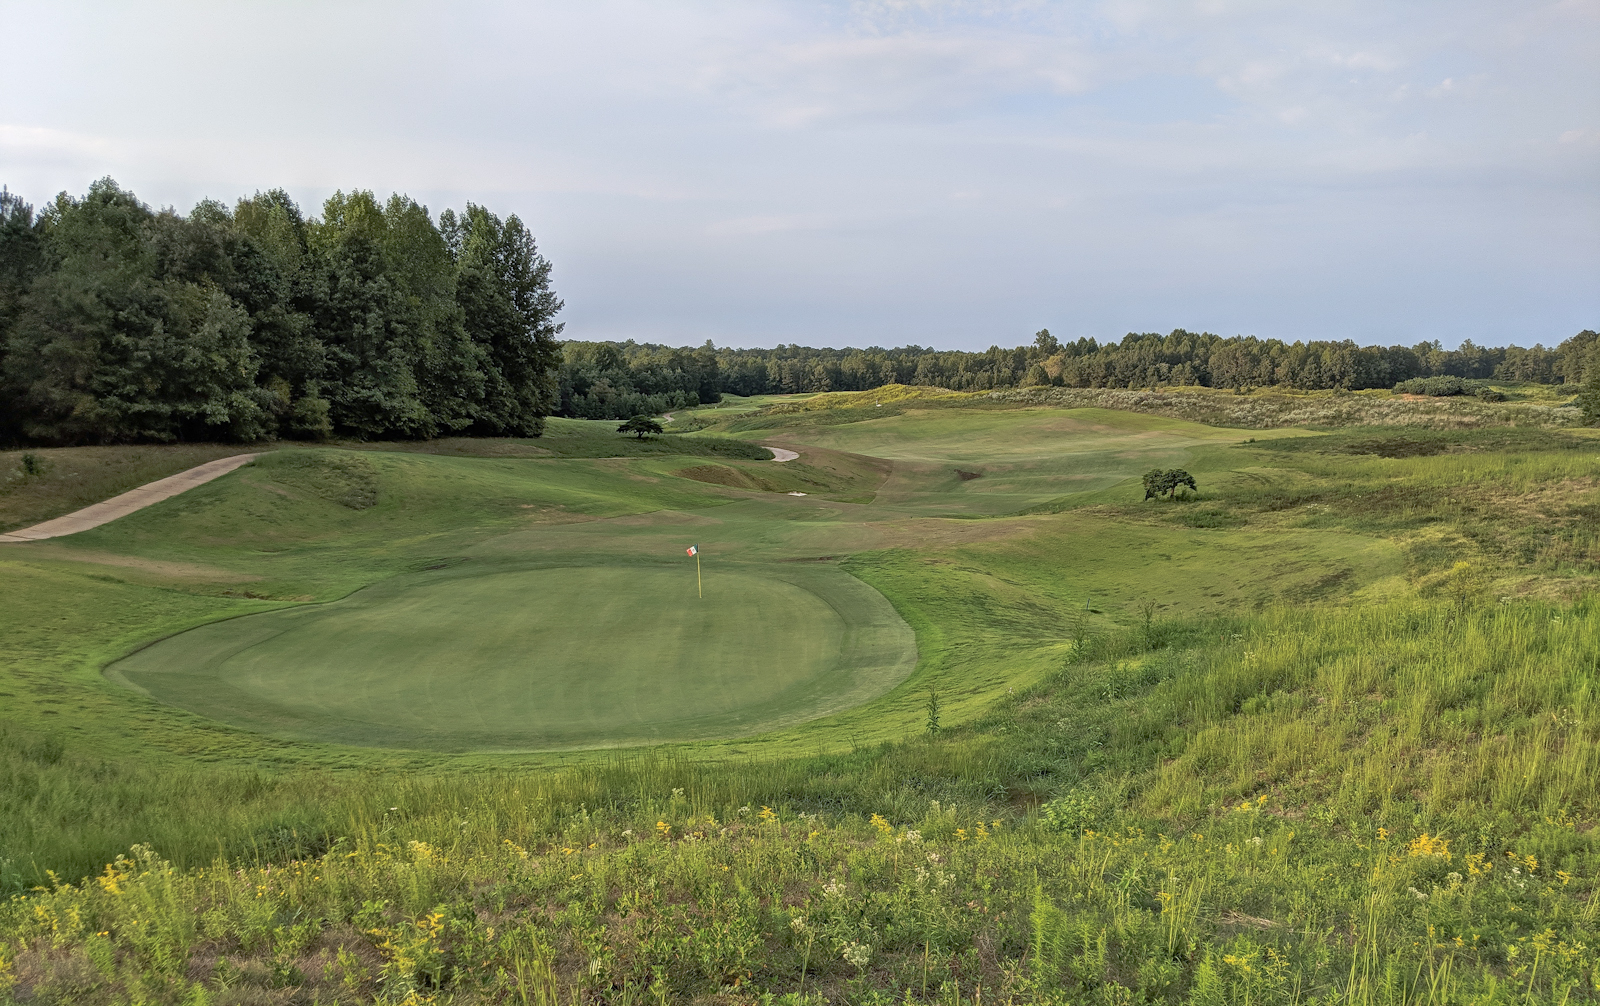 Royal_New_Kent_Gof_Club-Course_by_Terri_Aigner-36-of-74